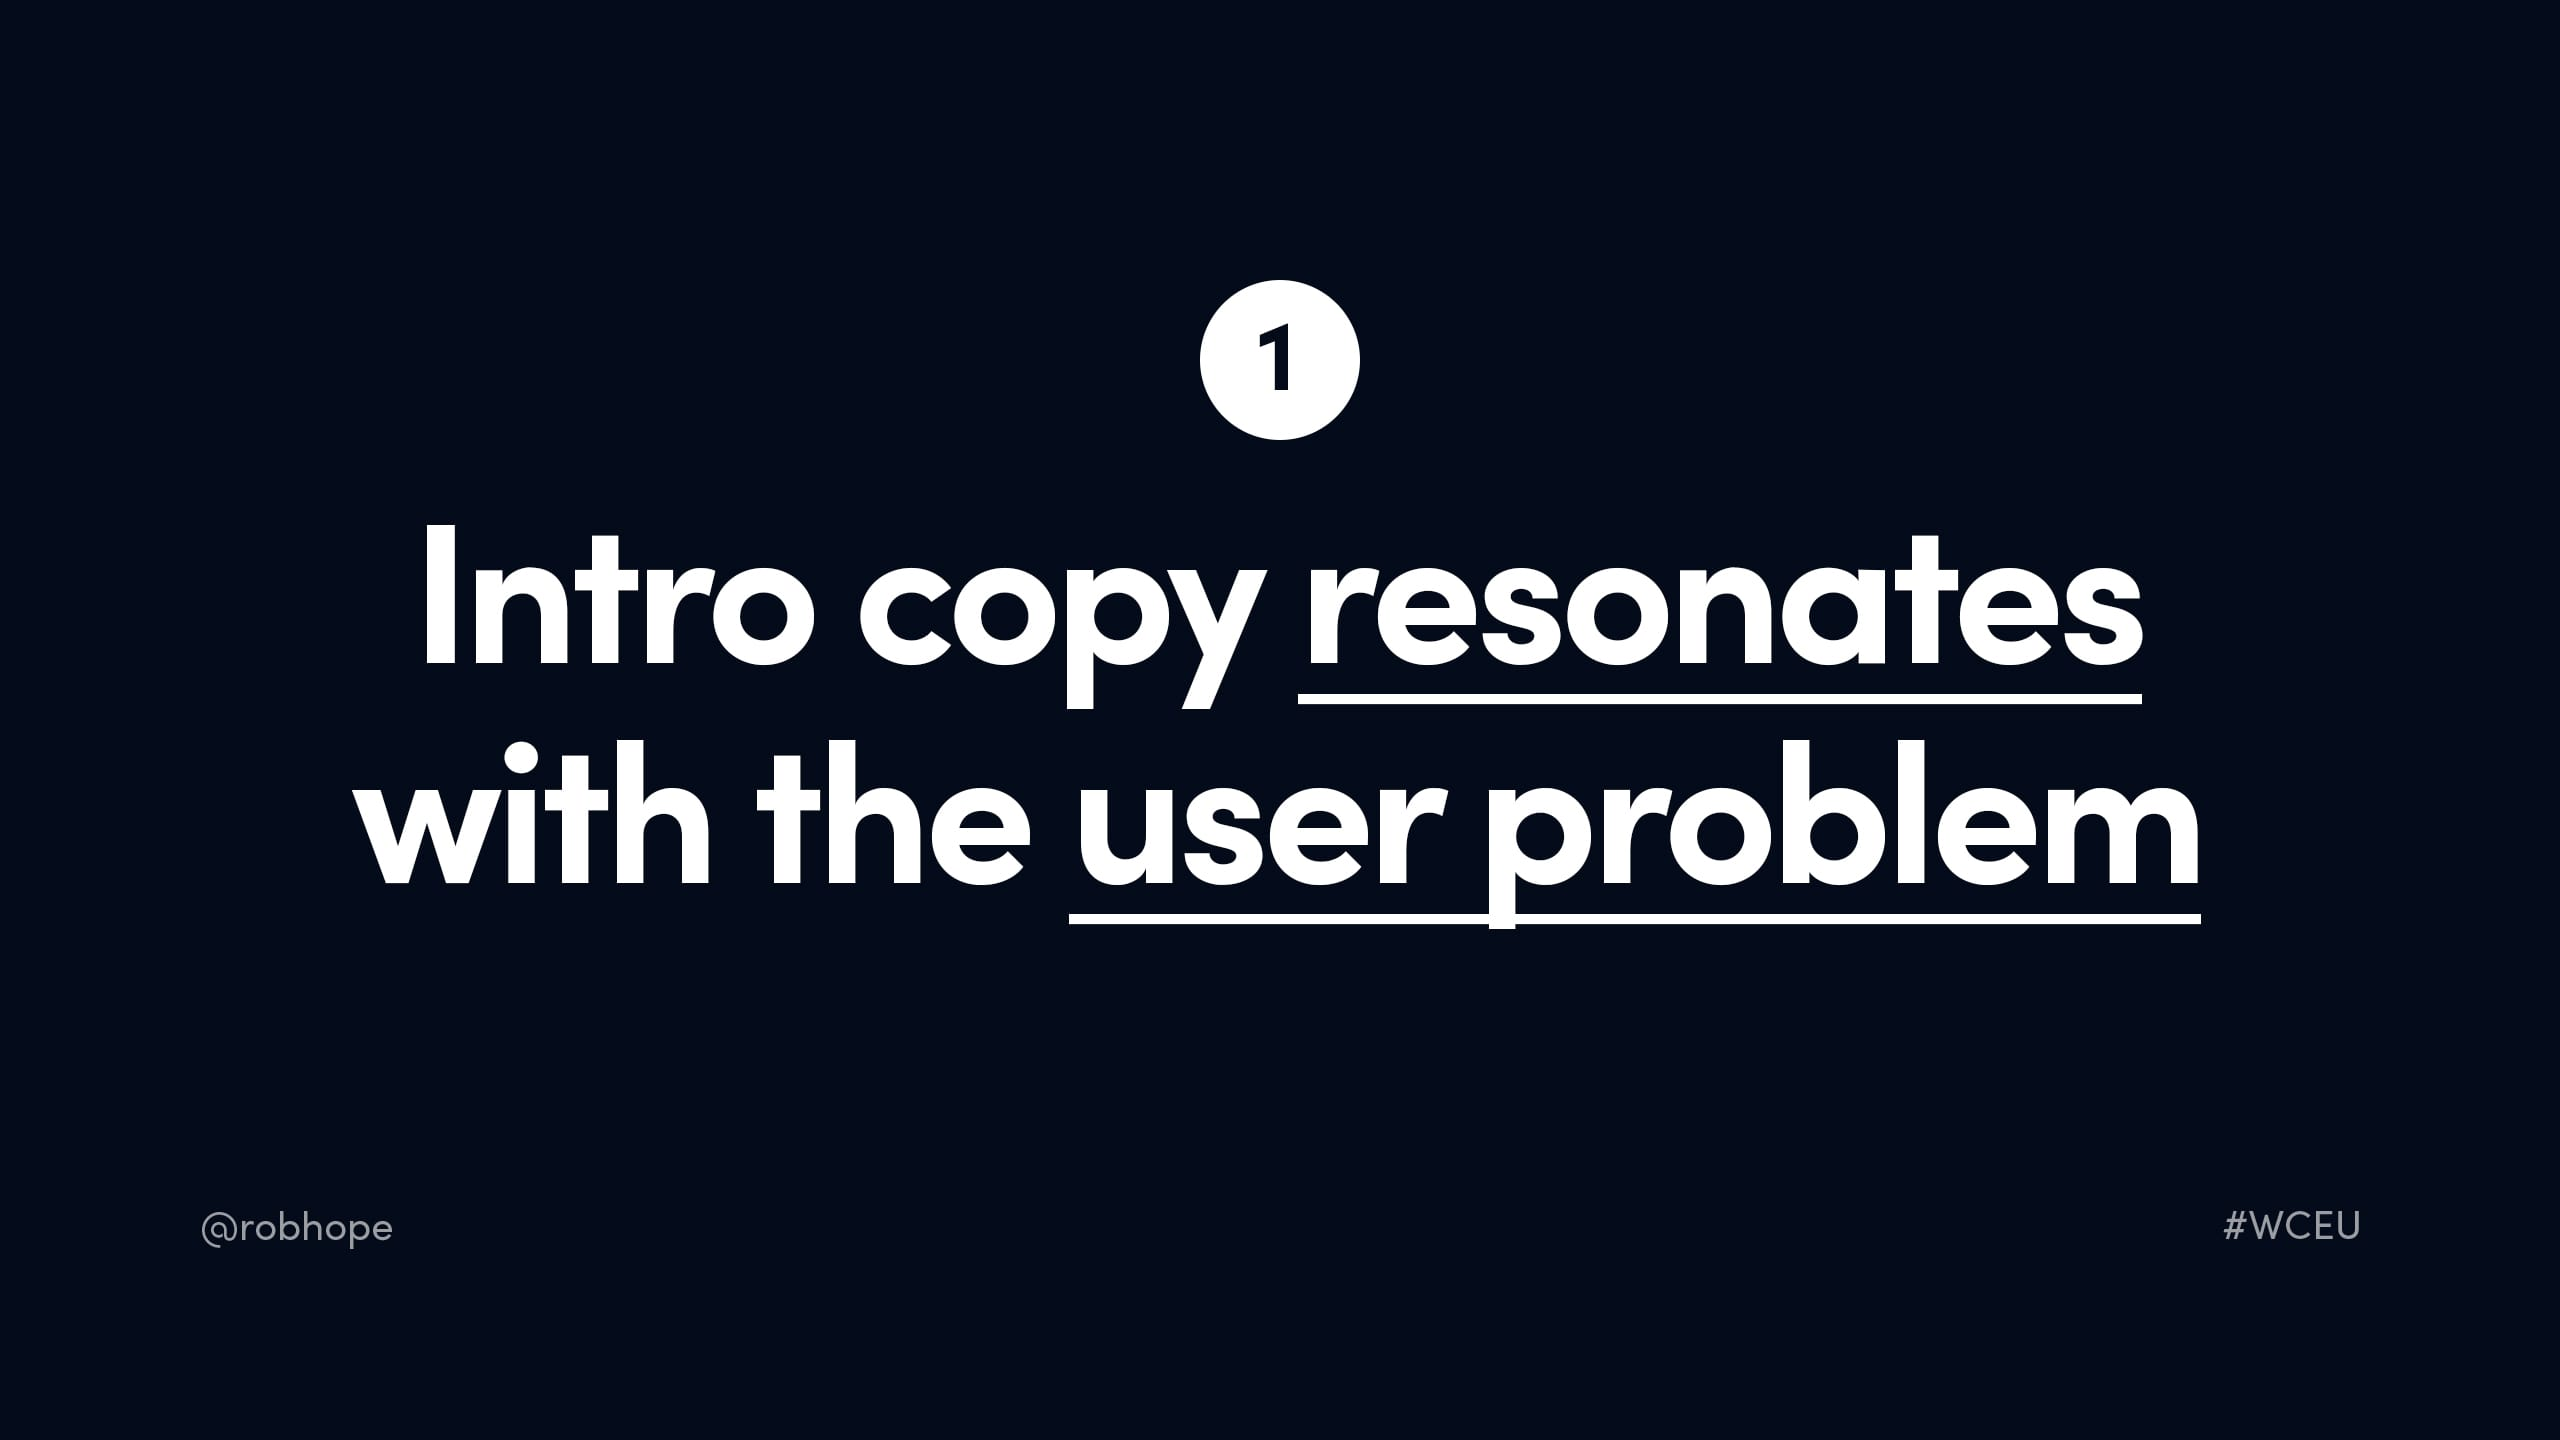 Intro copy must resonate with the user problem